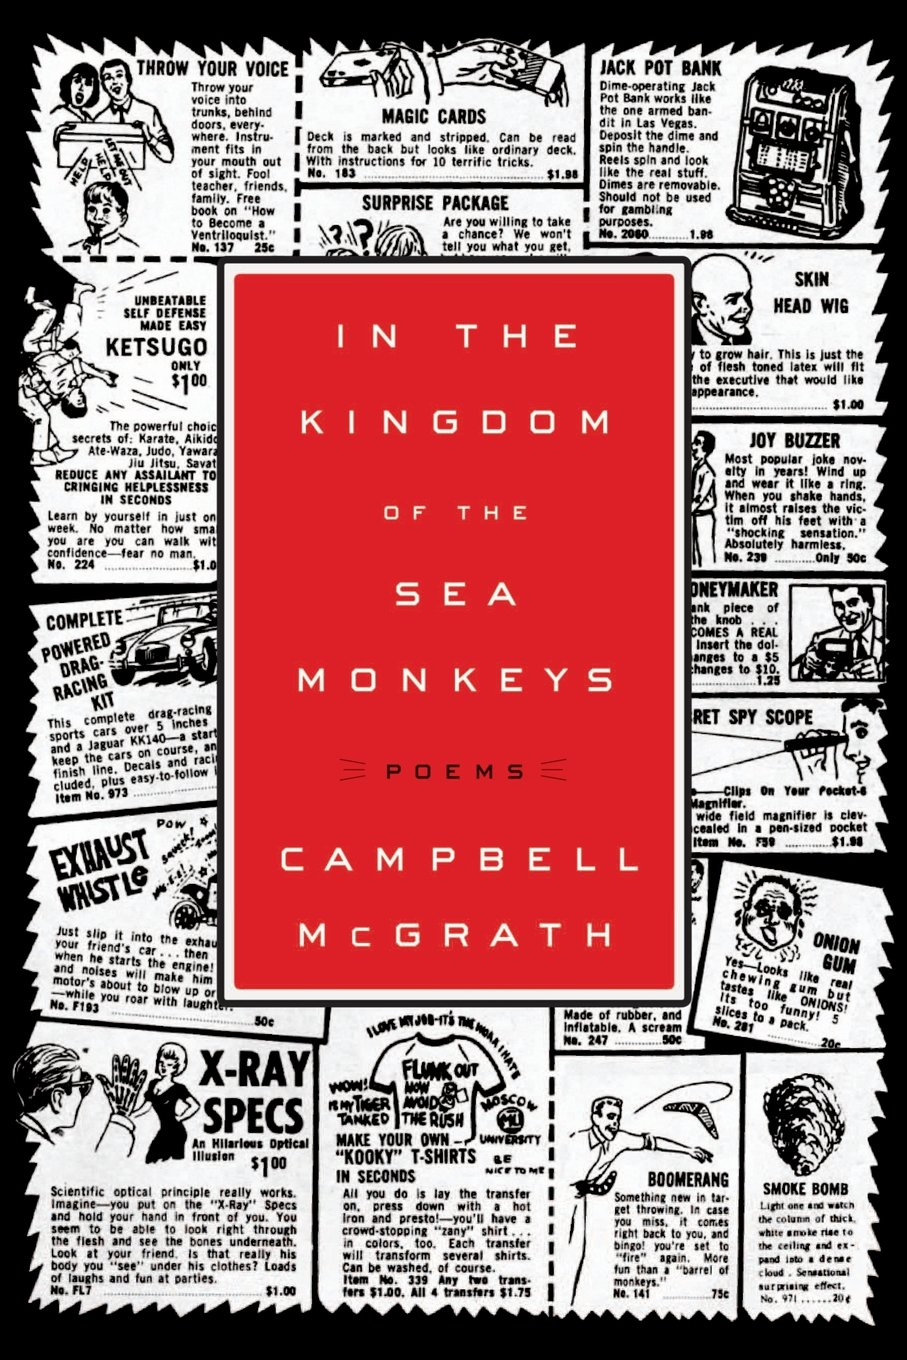 In the Kingdom of the Sea Monkeys: Poems pdf